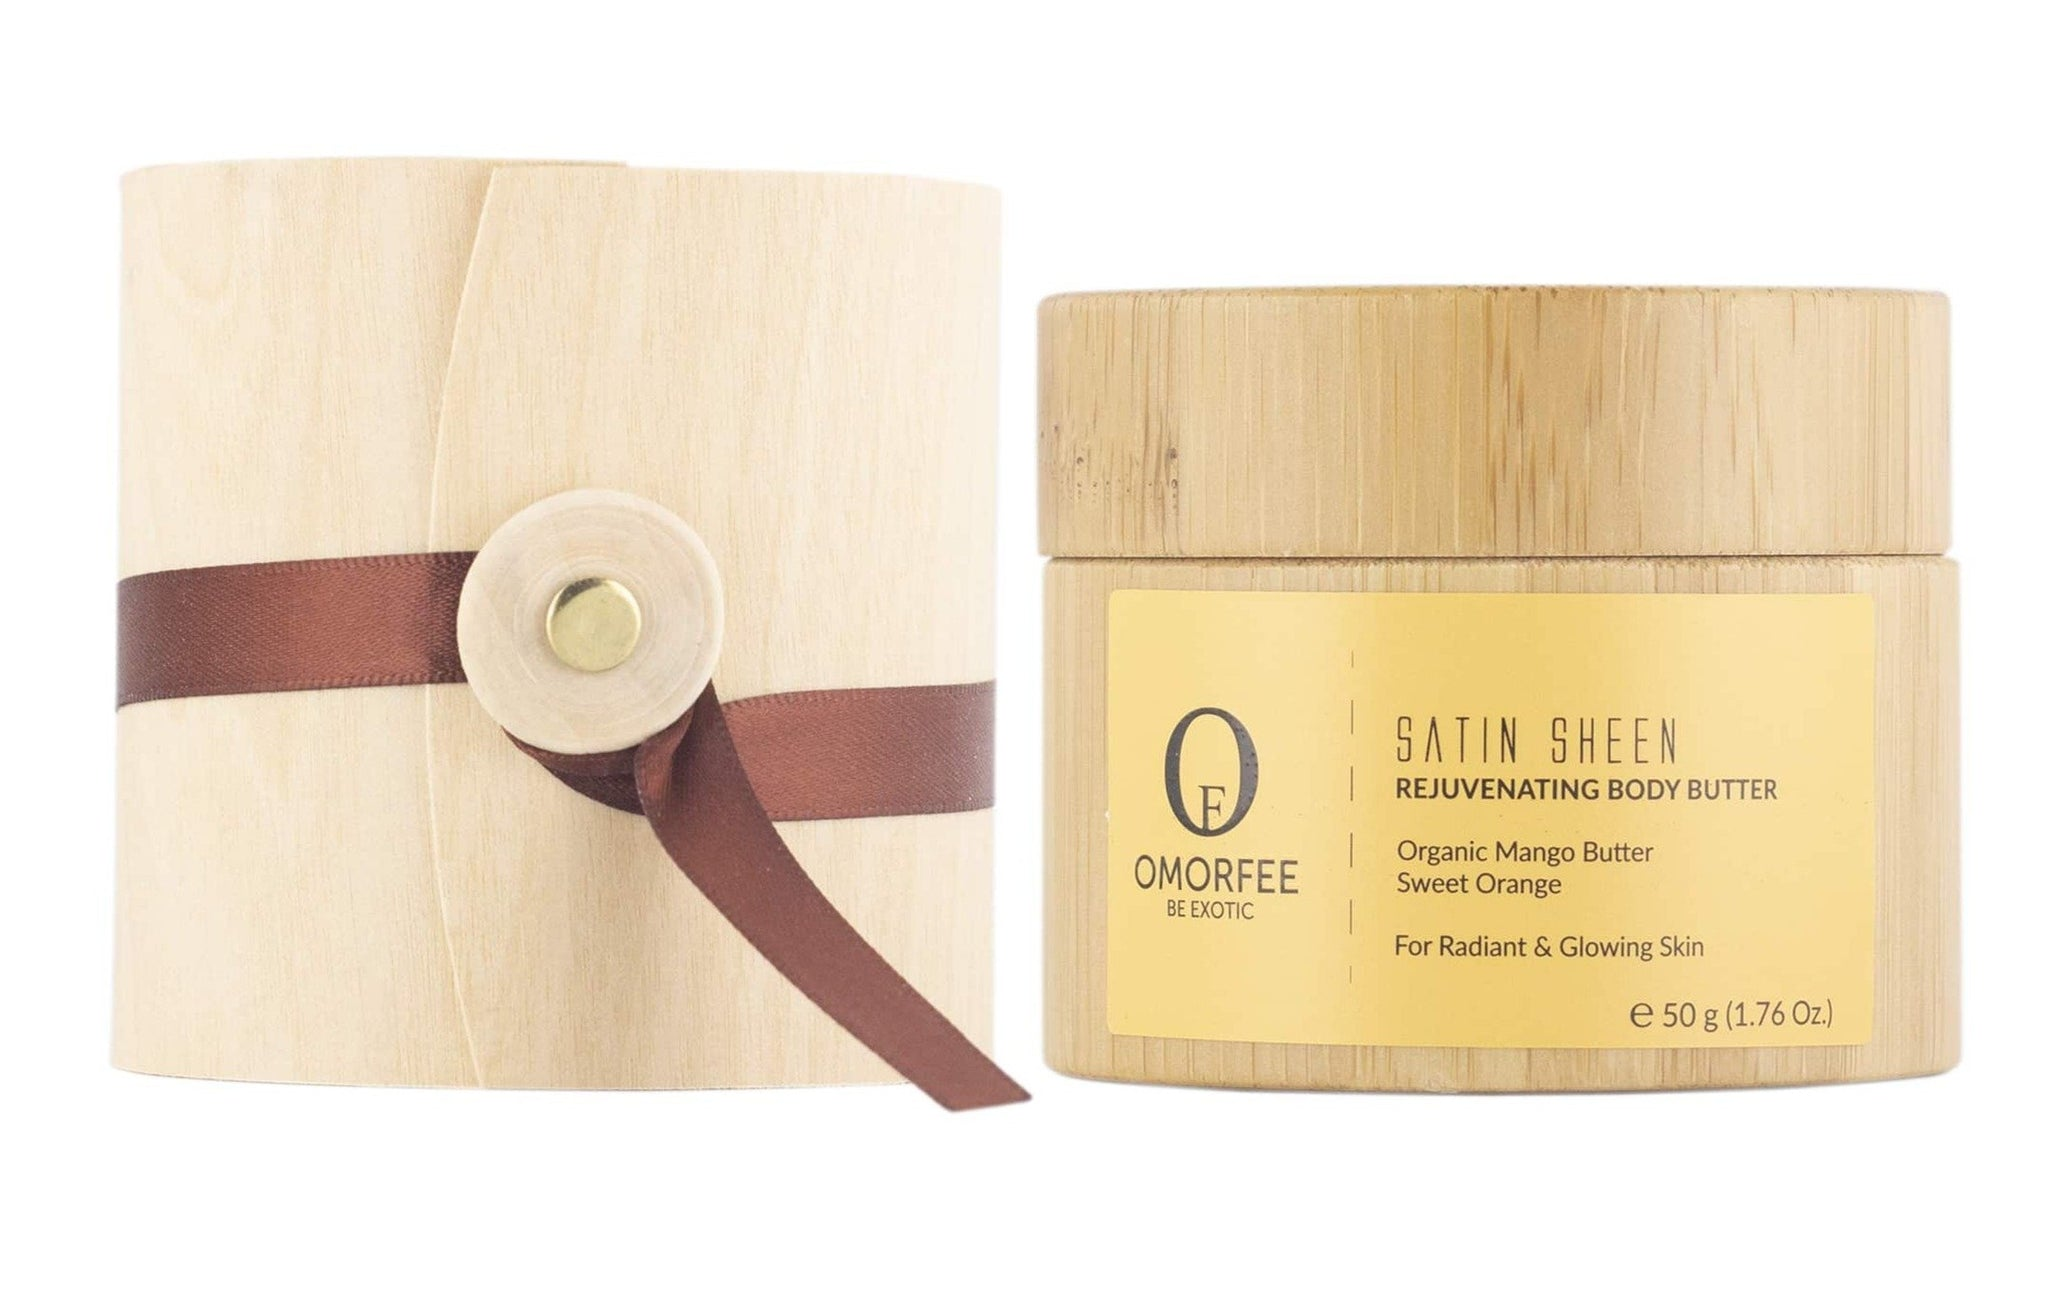 Satin Sheen Rejuvenating Body Butter